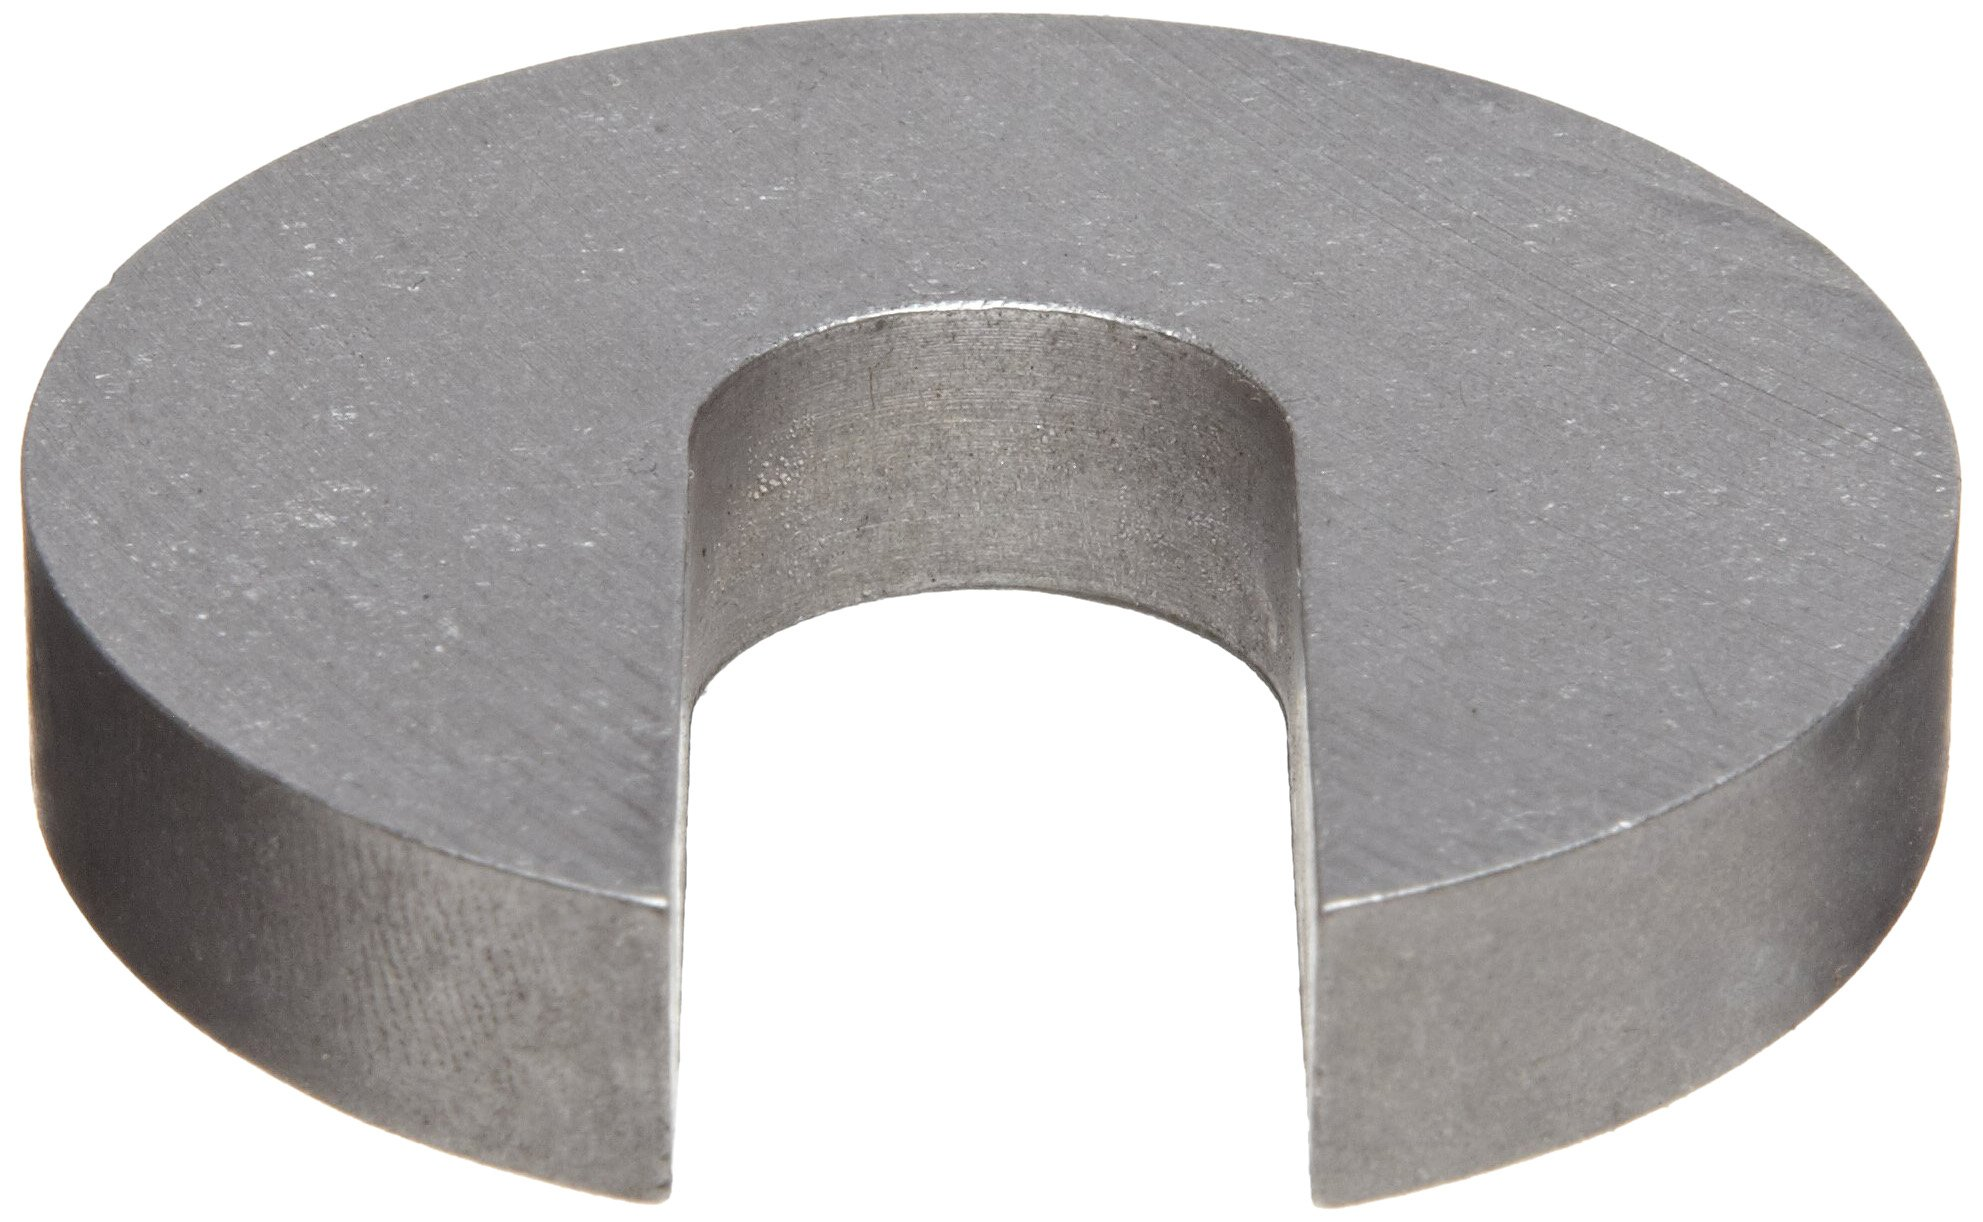 18-8 Stainless Steel Slotted Washer, 1-1/4'' Hole Size, 0.406'' ID, 1.750'' OD, 0.375'' Nominal Thickness, Made in US